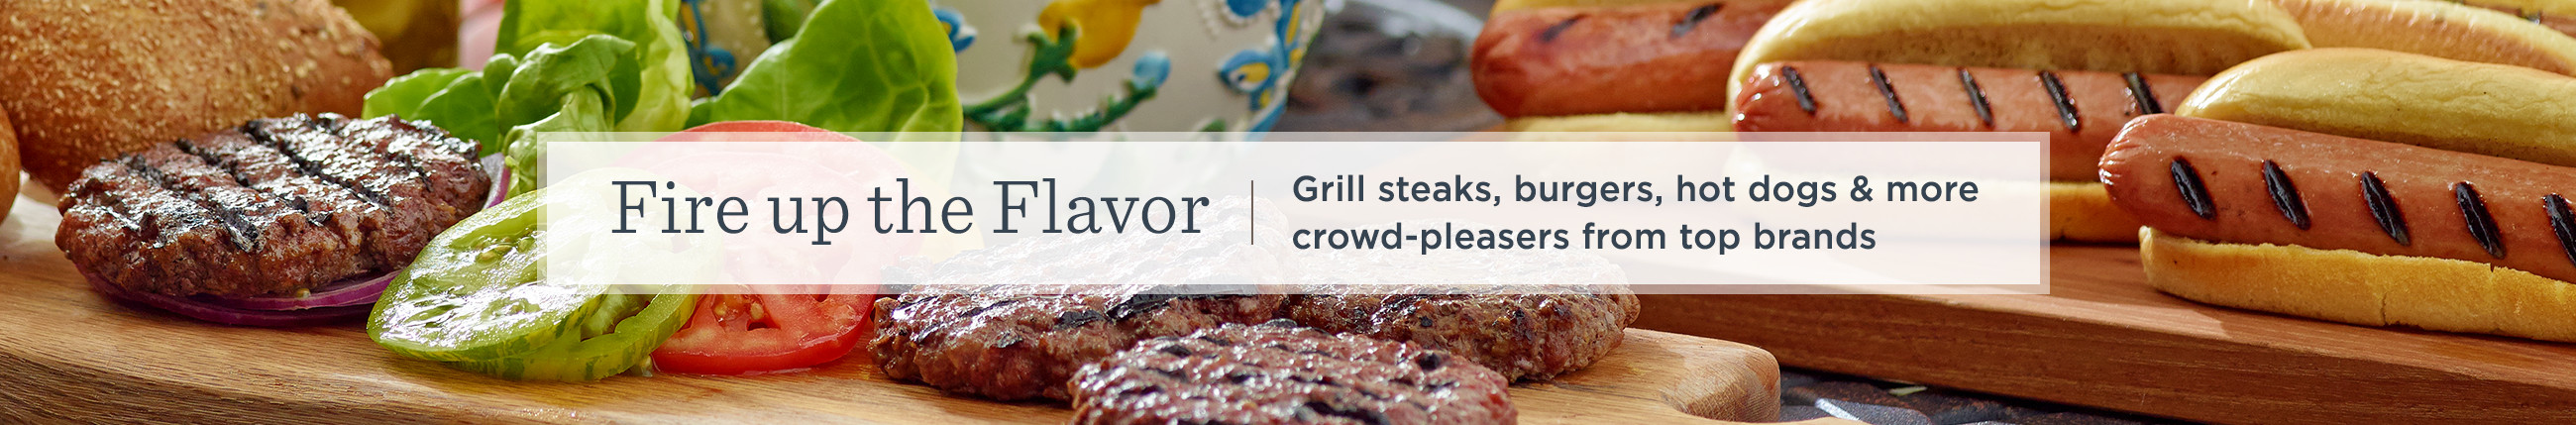 Fire up the Flavor.  Grill steaks, burgers, hot dogs & more crowd-pleasers from top brands.